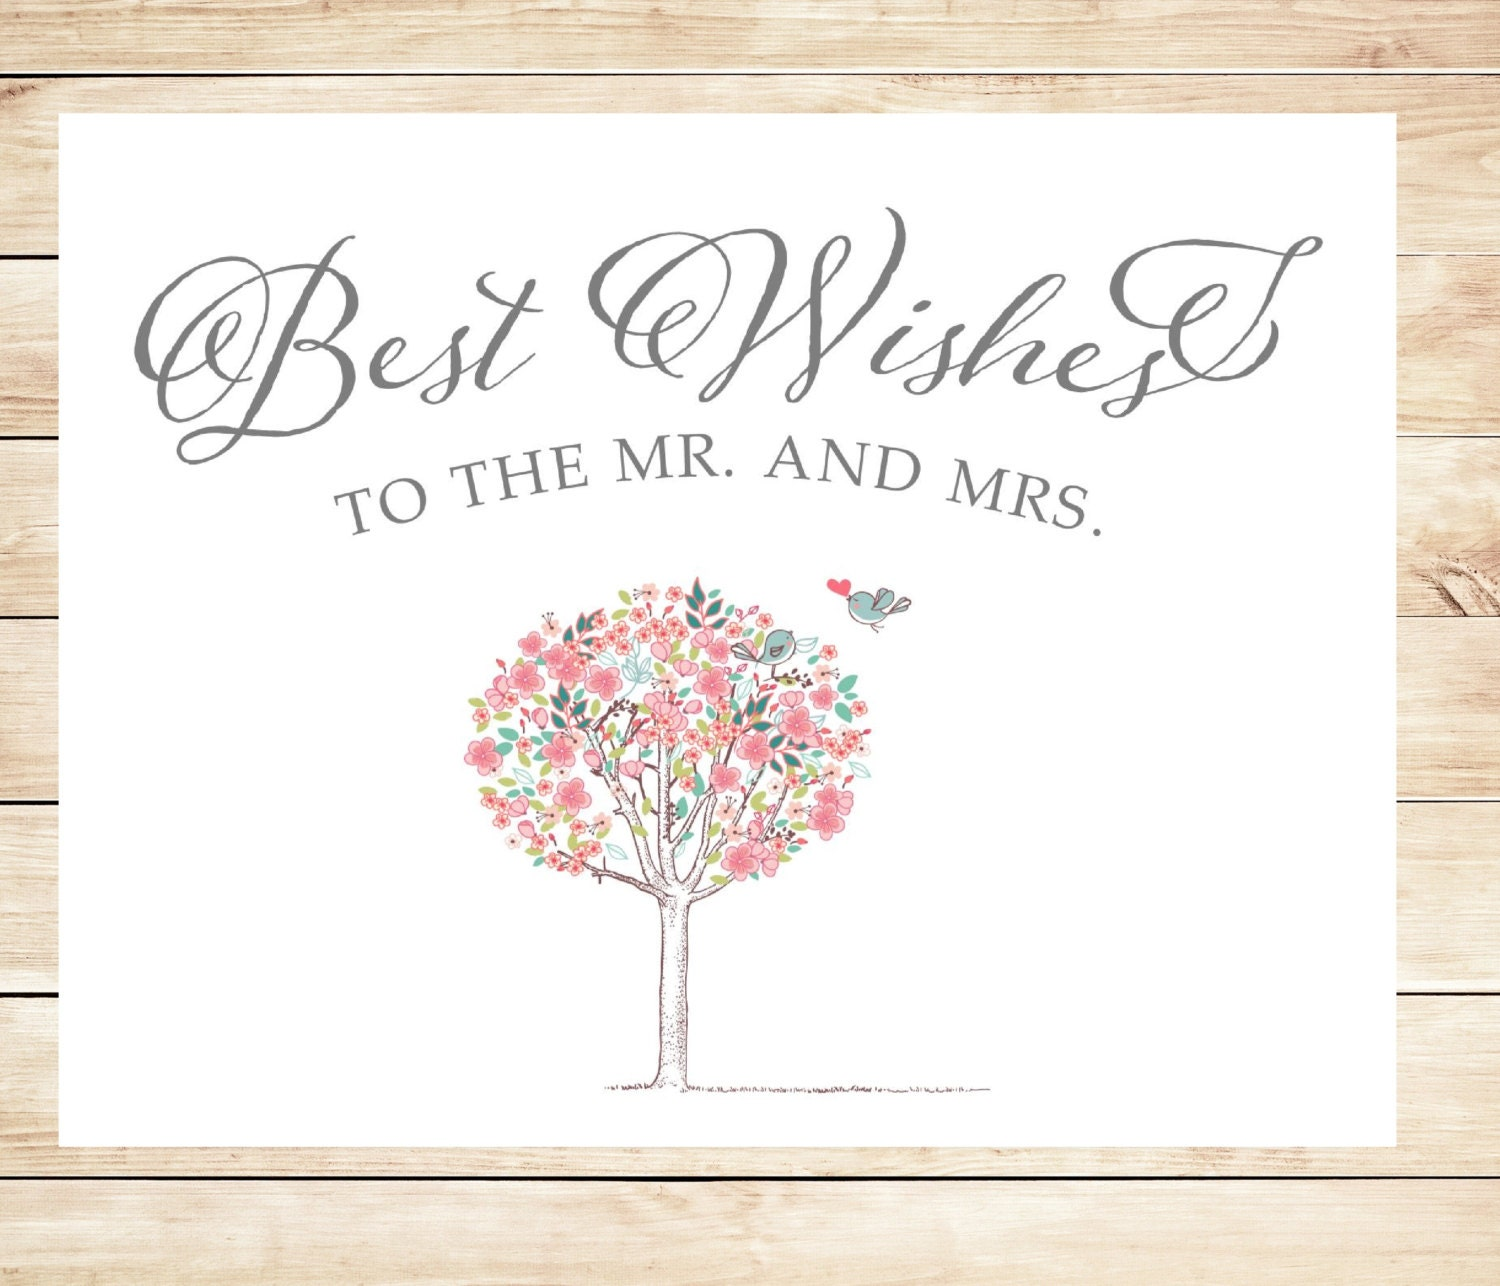 Rare image with free printable wedding cards